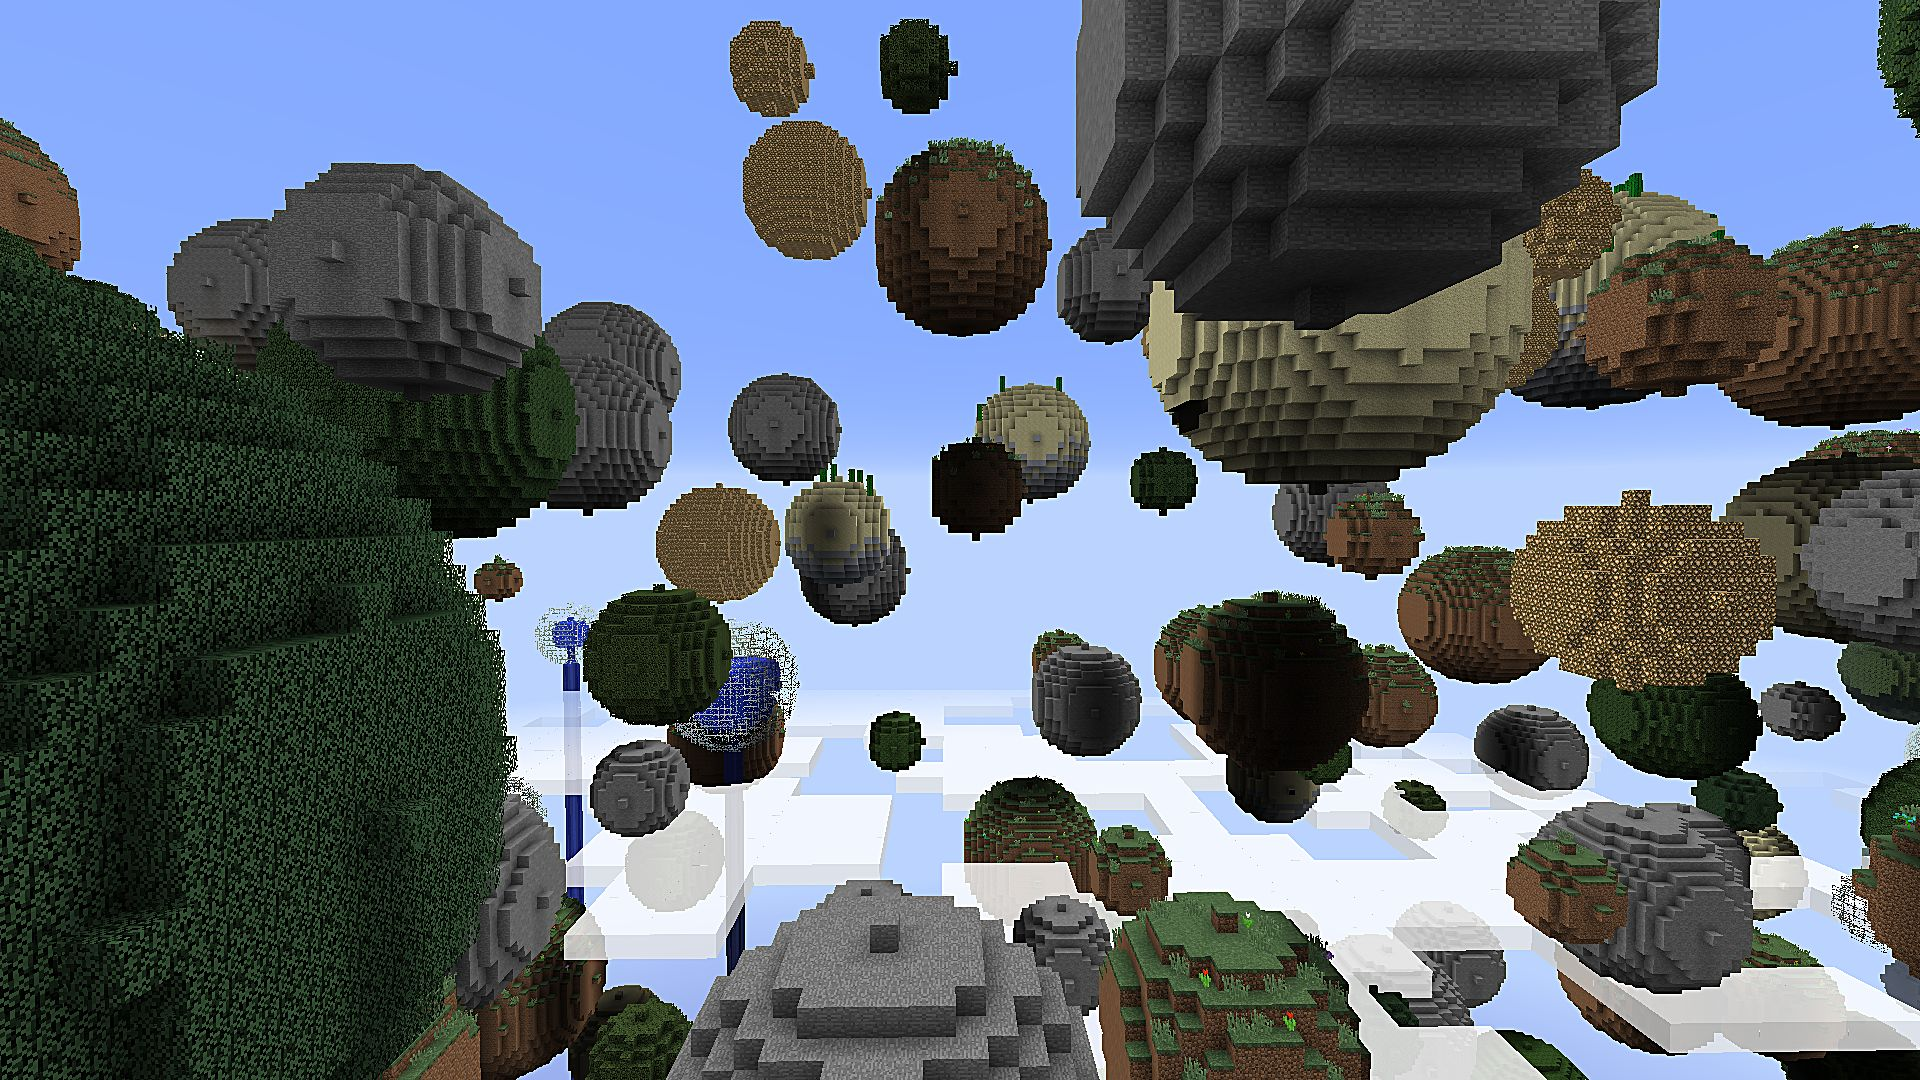 Make Minecraft Maps Using These 5 Map Editors